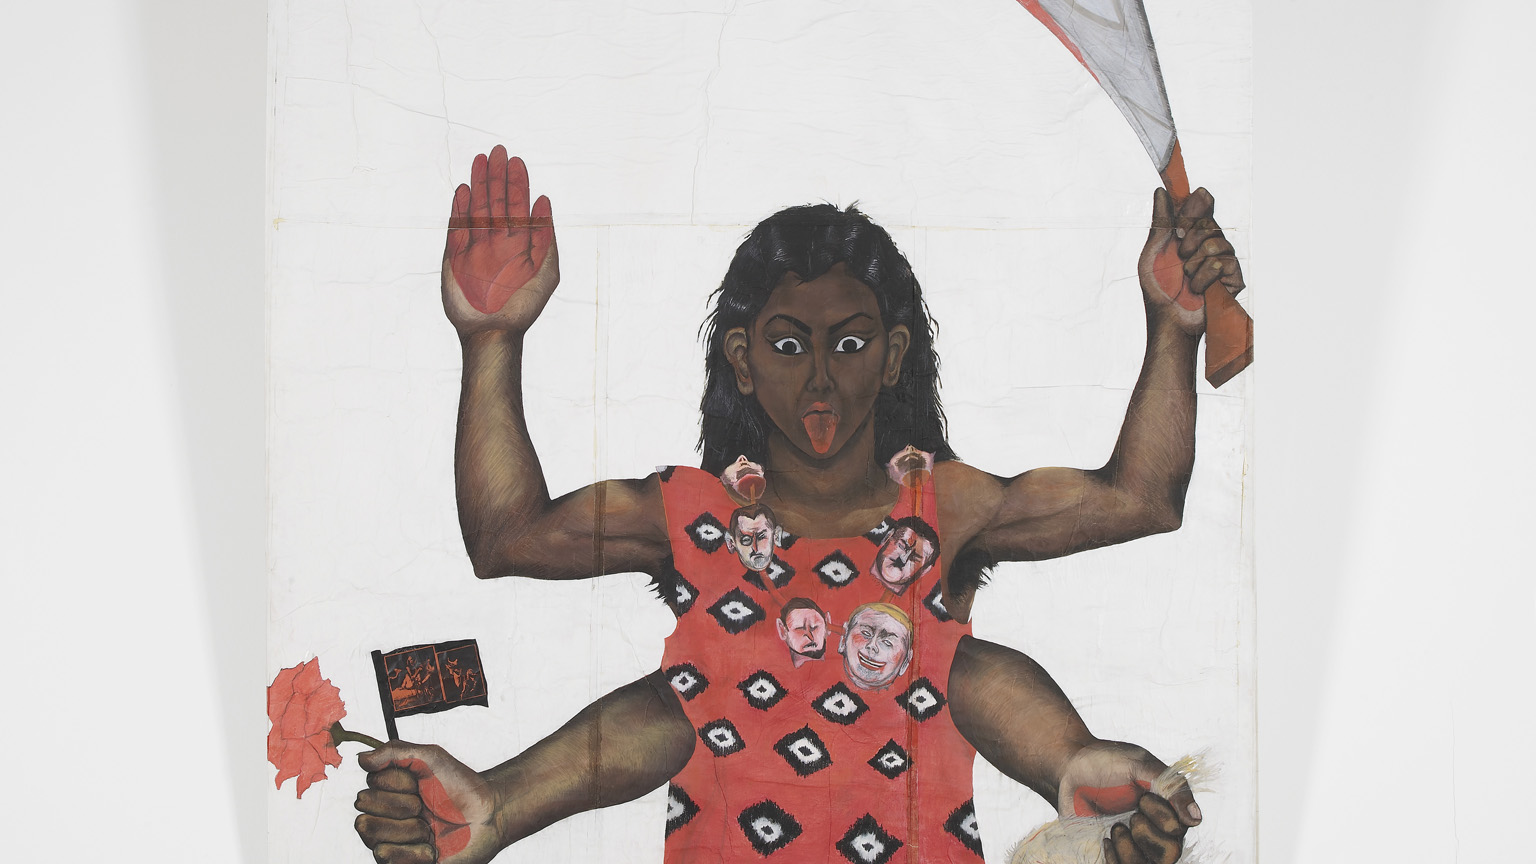 Sutapa Biswas, Housewives with Steak-knives, 1984-85, Oil, acrylic, pastel, pencil, white tape, collage on paper mounted onto stretched canvas, 2450 x 2220mm